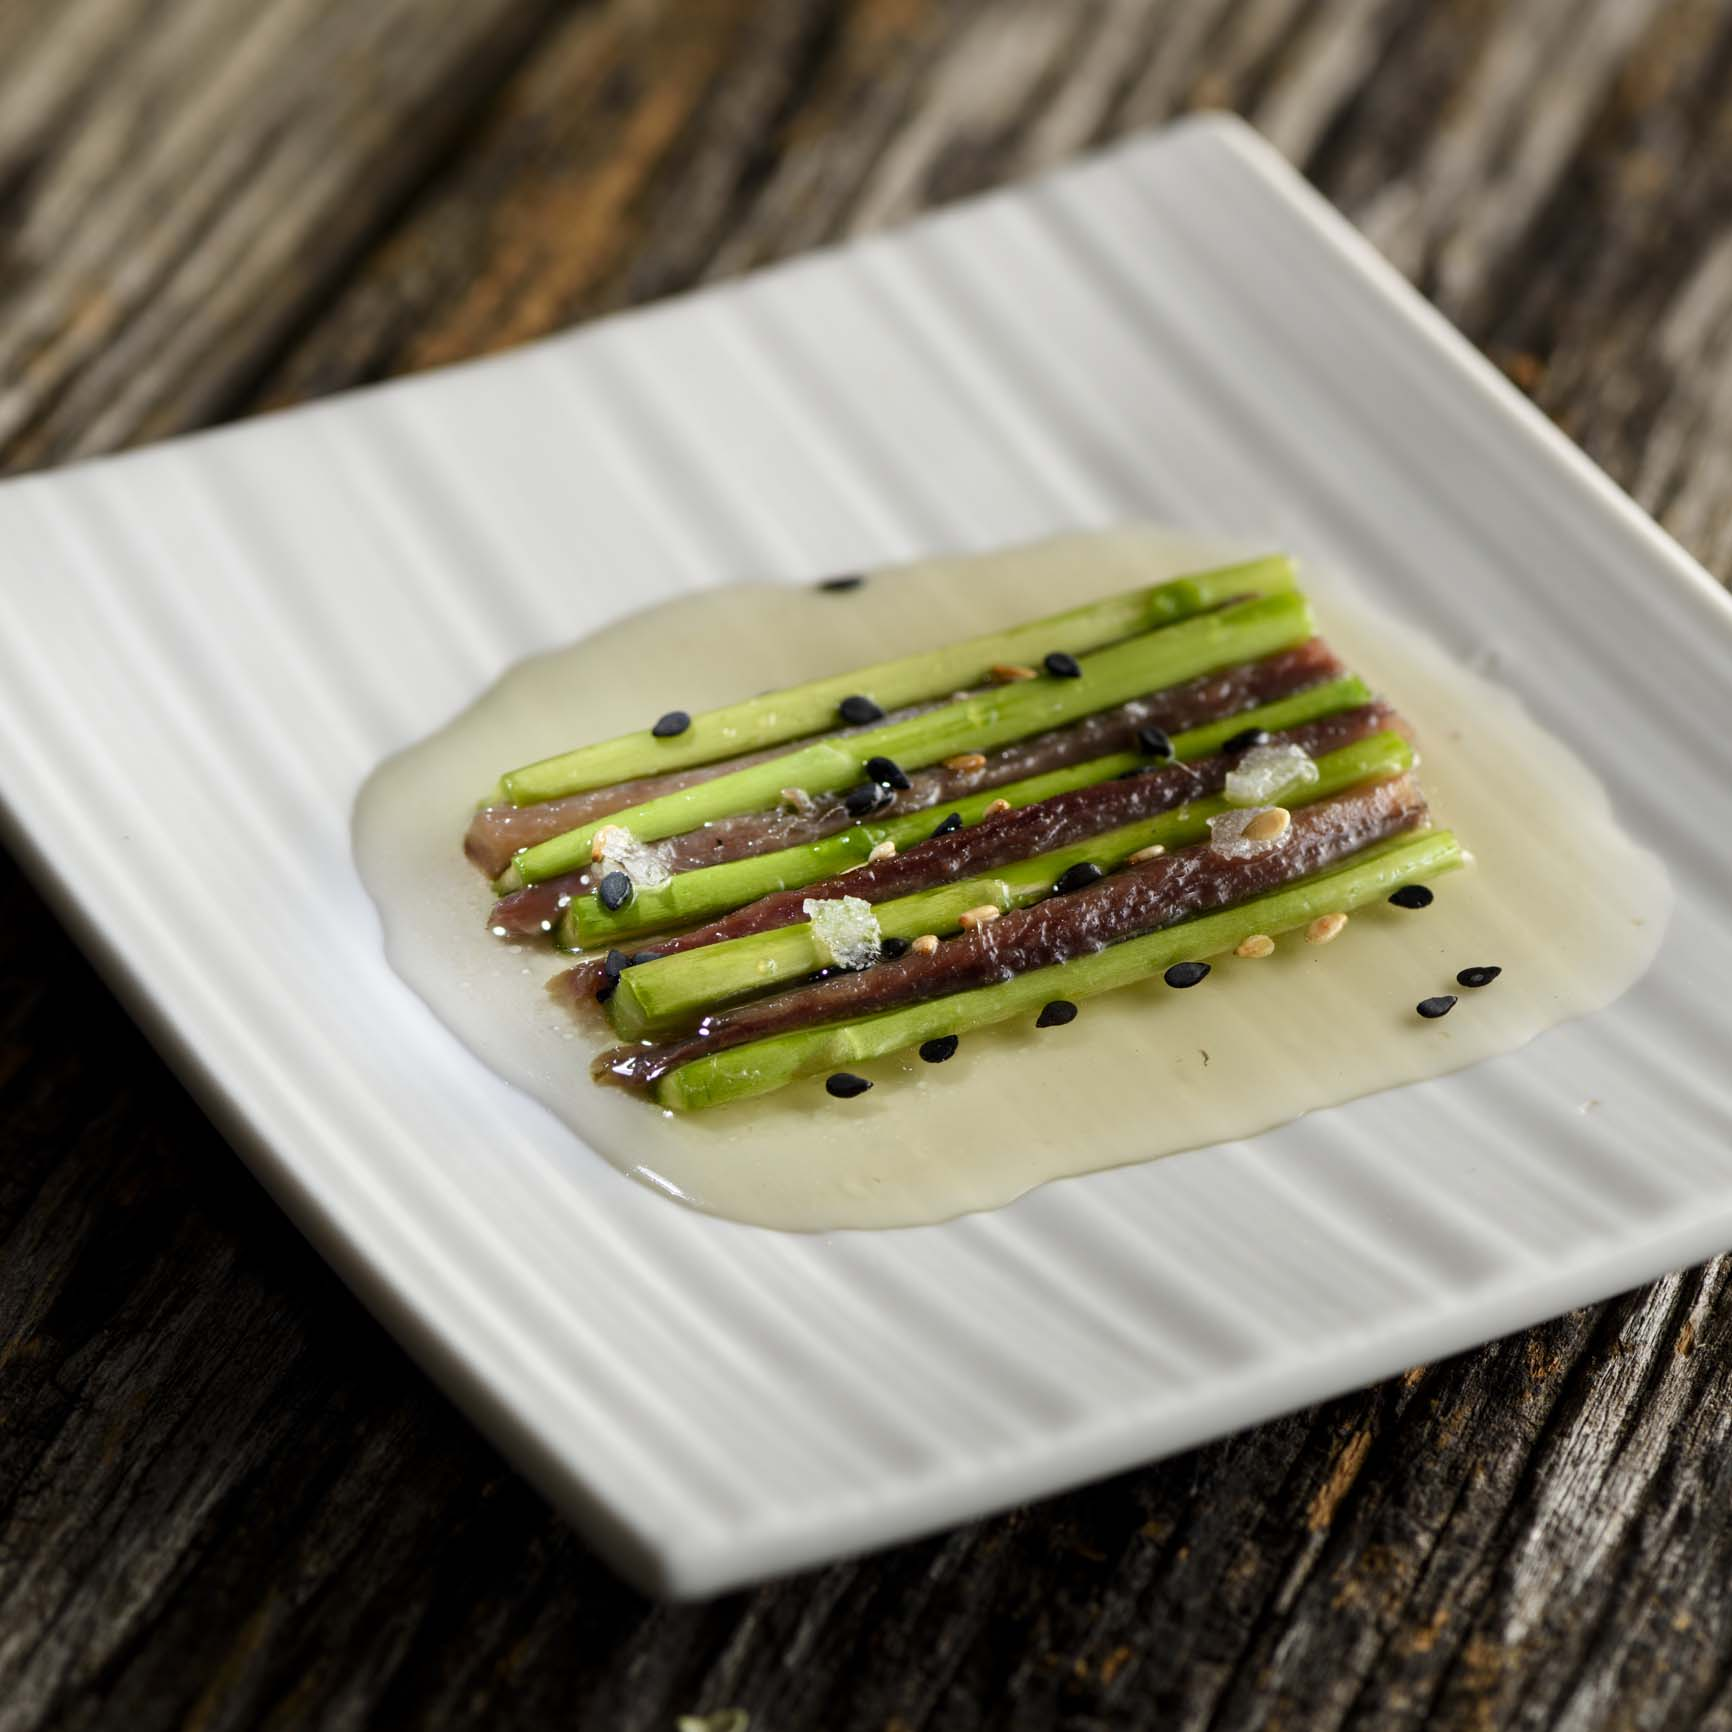 Basque Cantabrian Anchovy with asparagus and a sesame vinaigrette